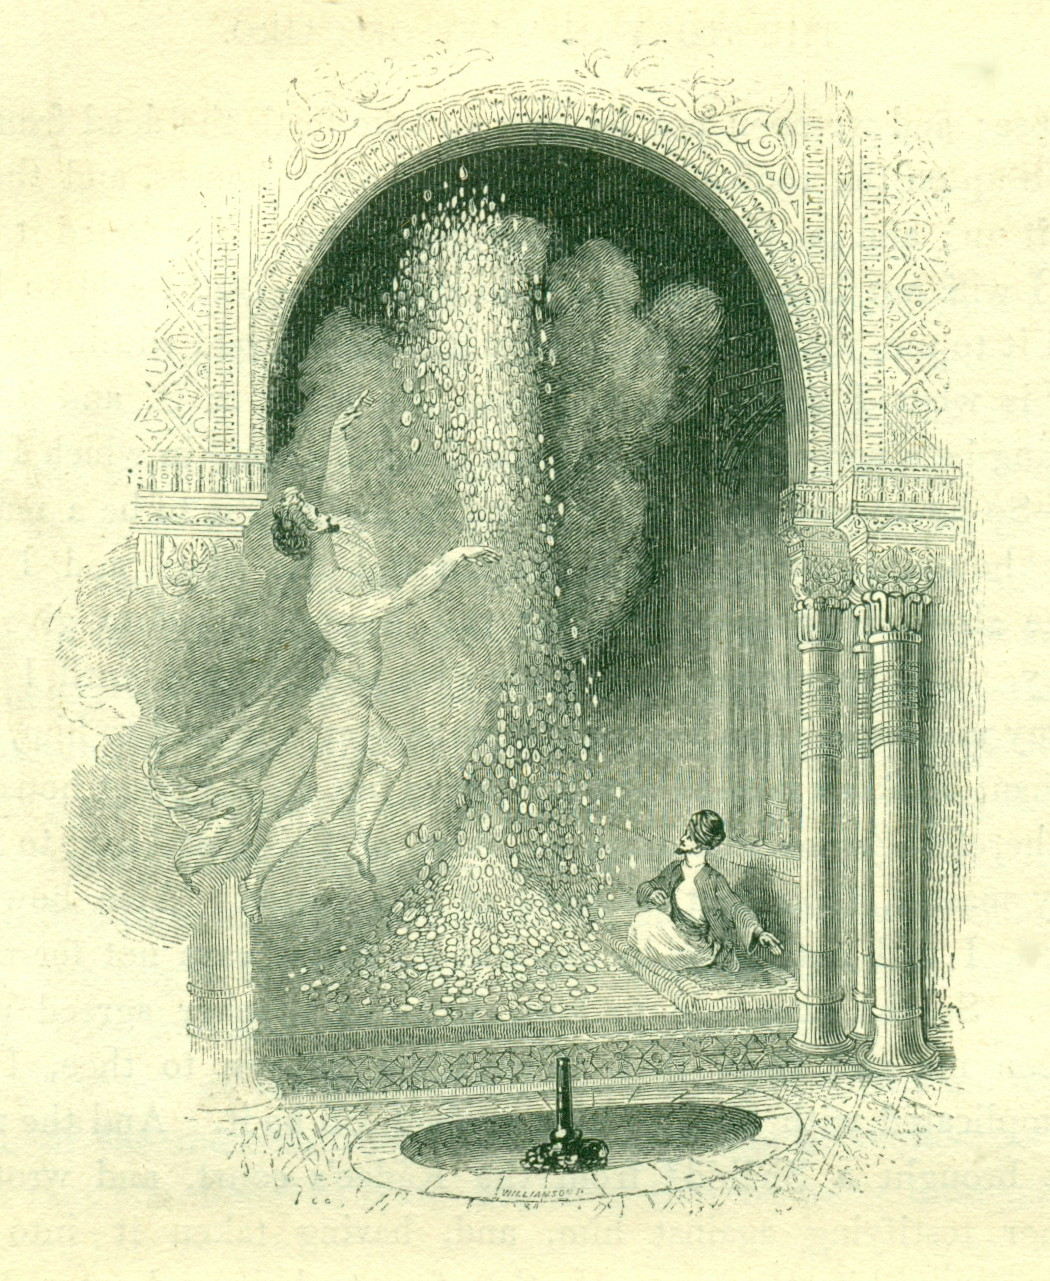 Illustration to The Story of Alee of Cairo from the Arabian Nights. Design by William Harvey